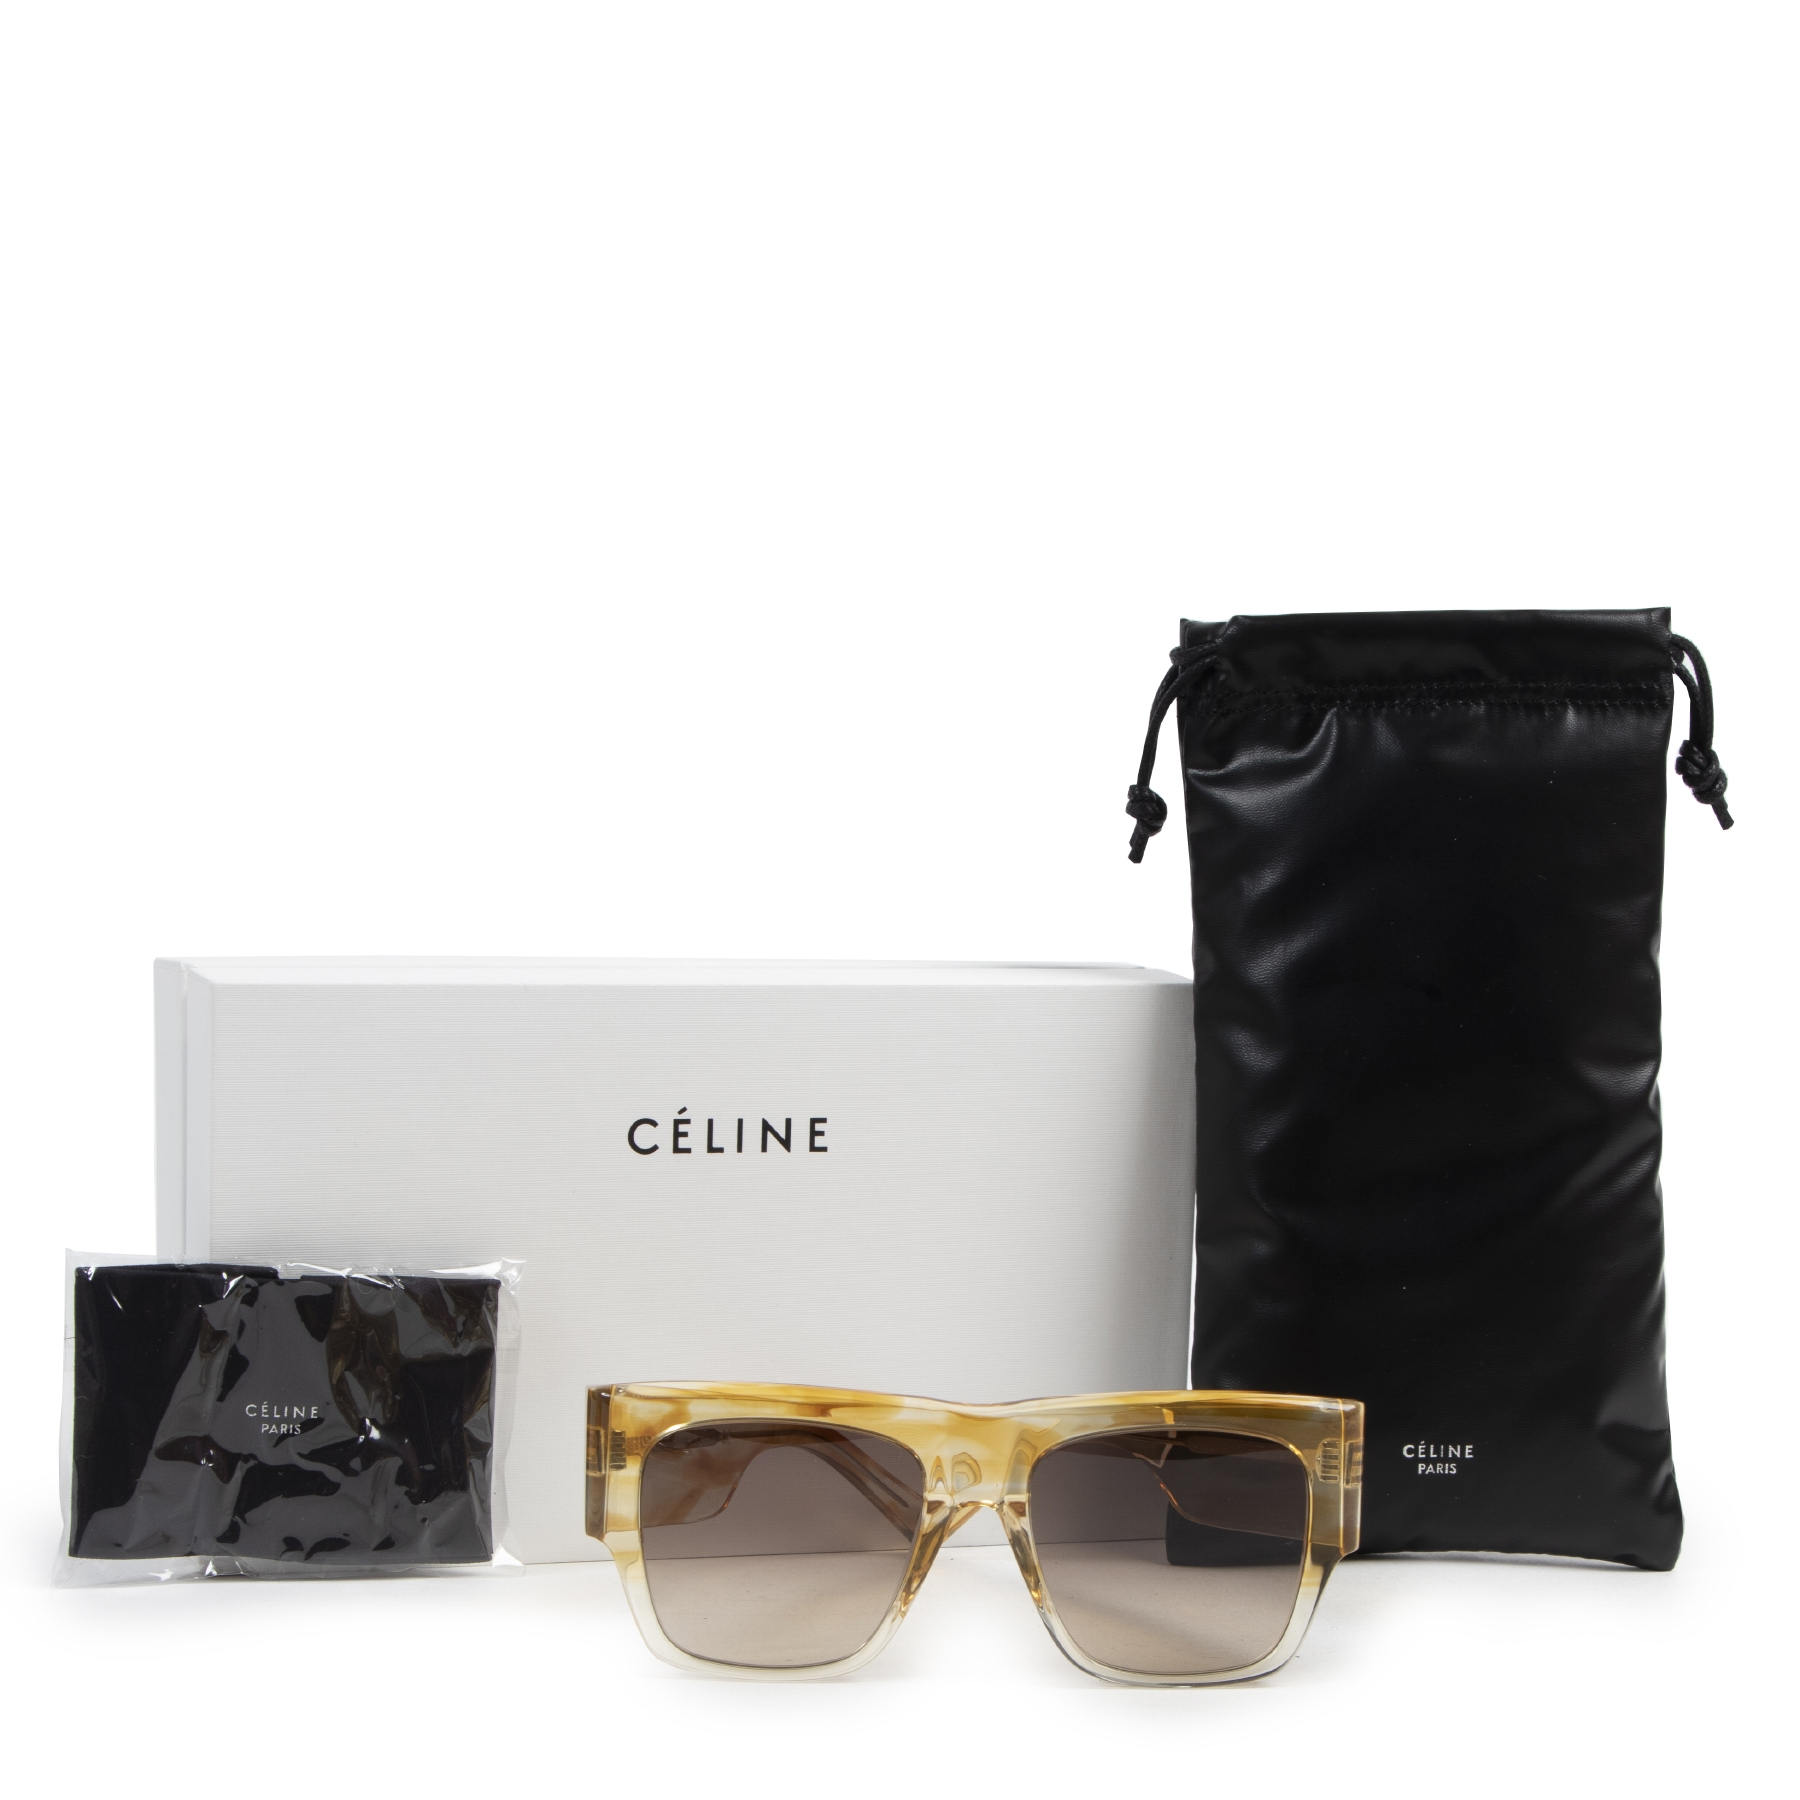 Authentic secondhand Céline Yellow Havana Striped Rectangular 0056 Sunglasses designer accessories fashion luxury vintage webshop safe secure online shopping